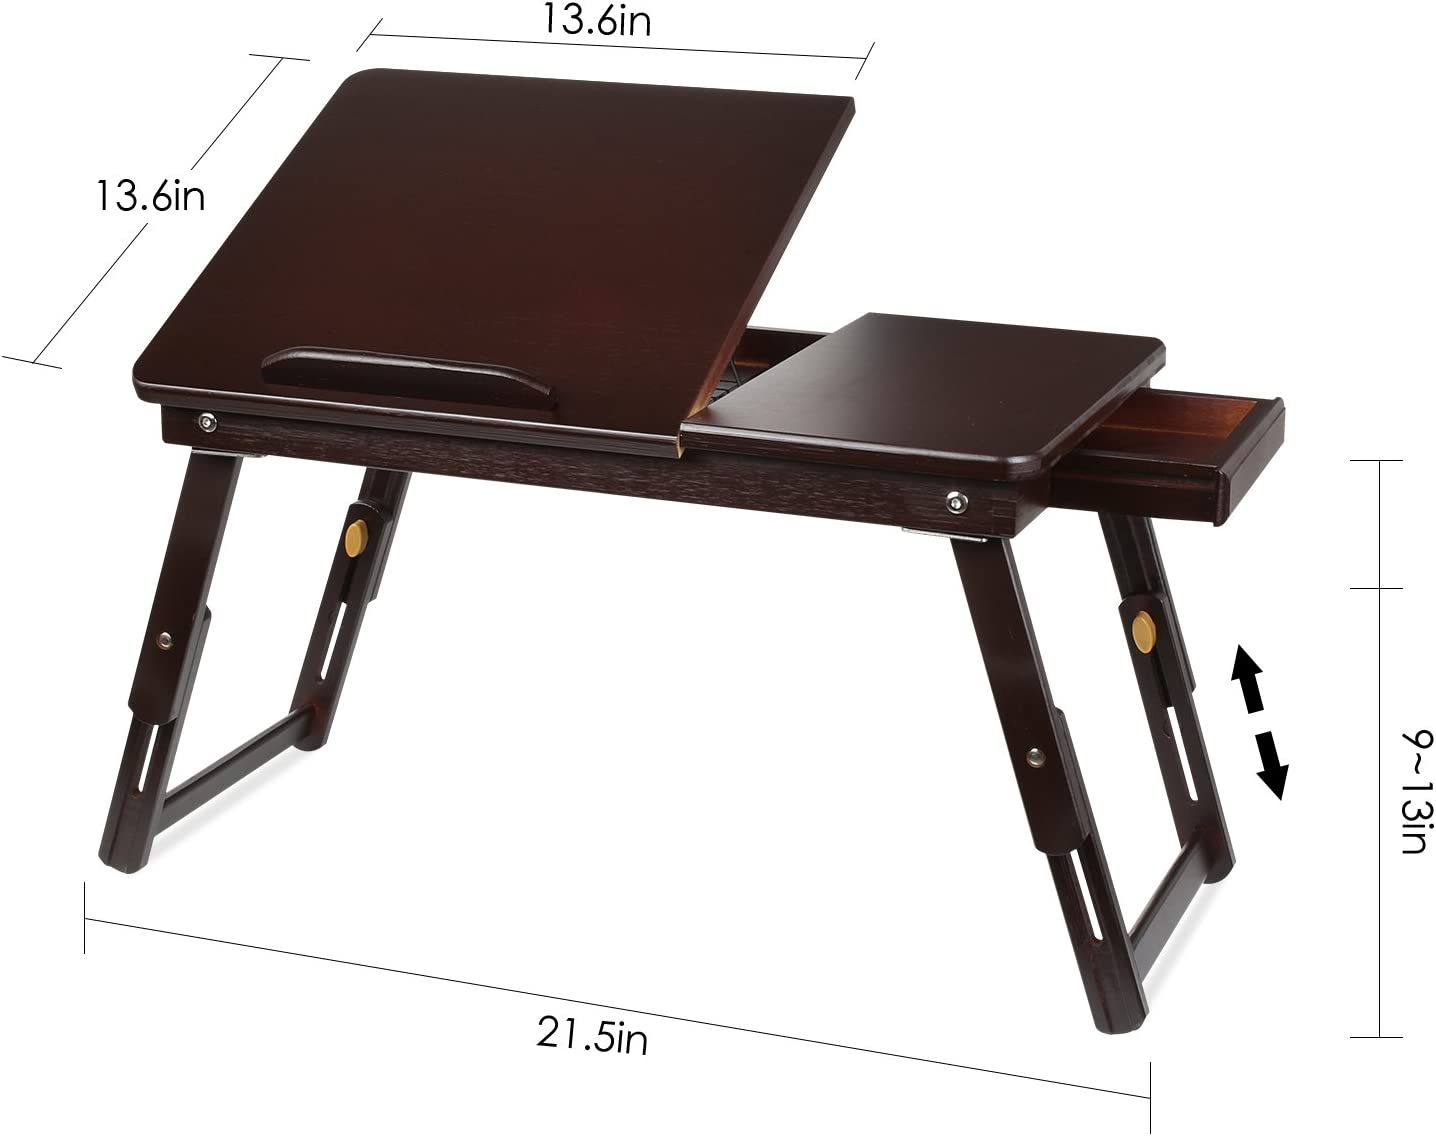 Home Bamboo Adjustable 3 Height Lift Bed Table with Tray Student Reading Desk Desk with Sloping top daily supplies Foldable Cooling Laptop Desk